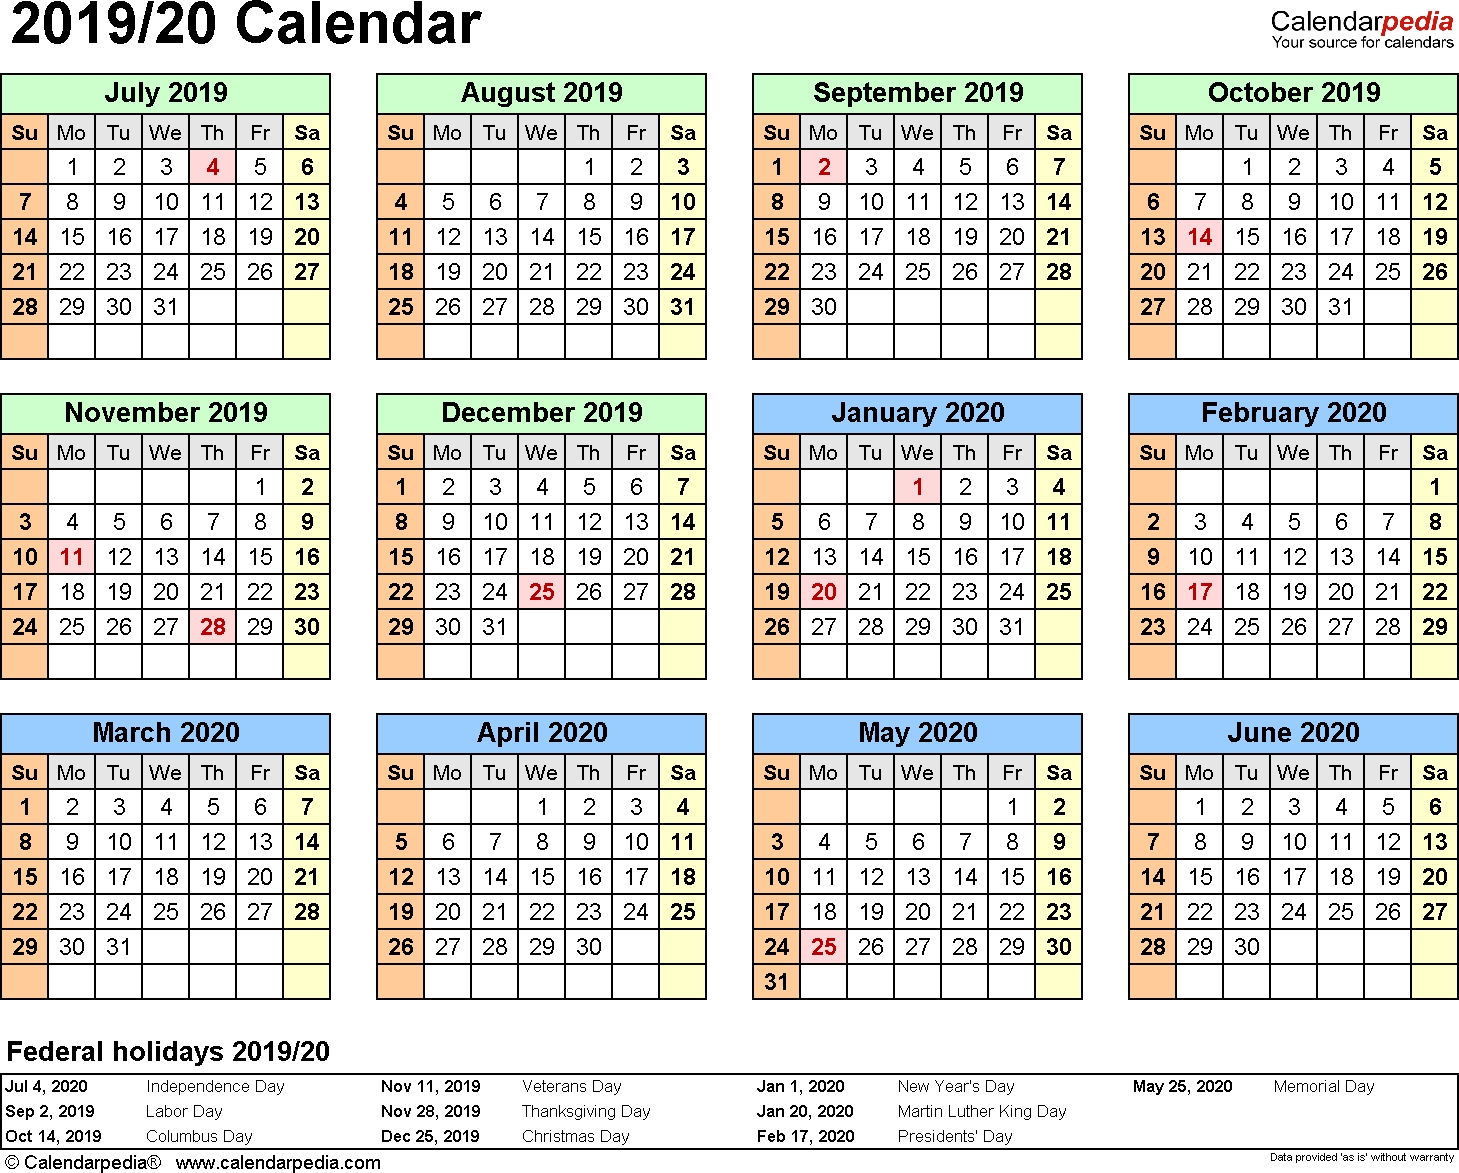 Split Year Calendar 2019/20 (July To June) - Word Templates in Calender September 2019 To August 2020